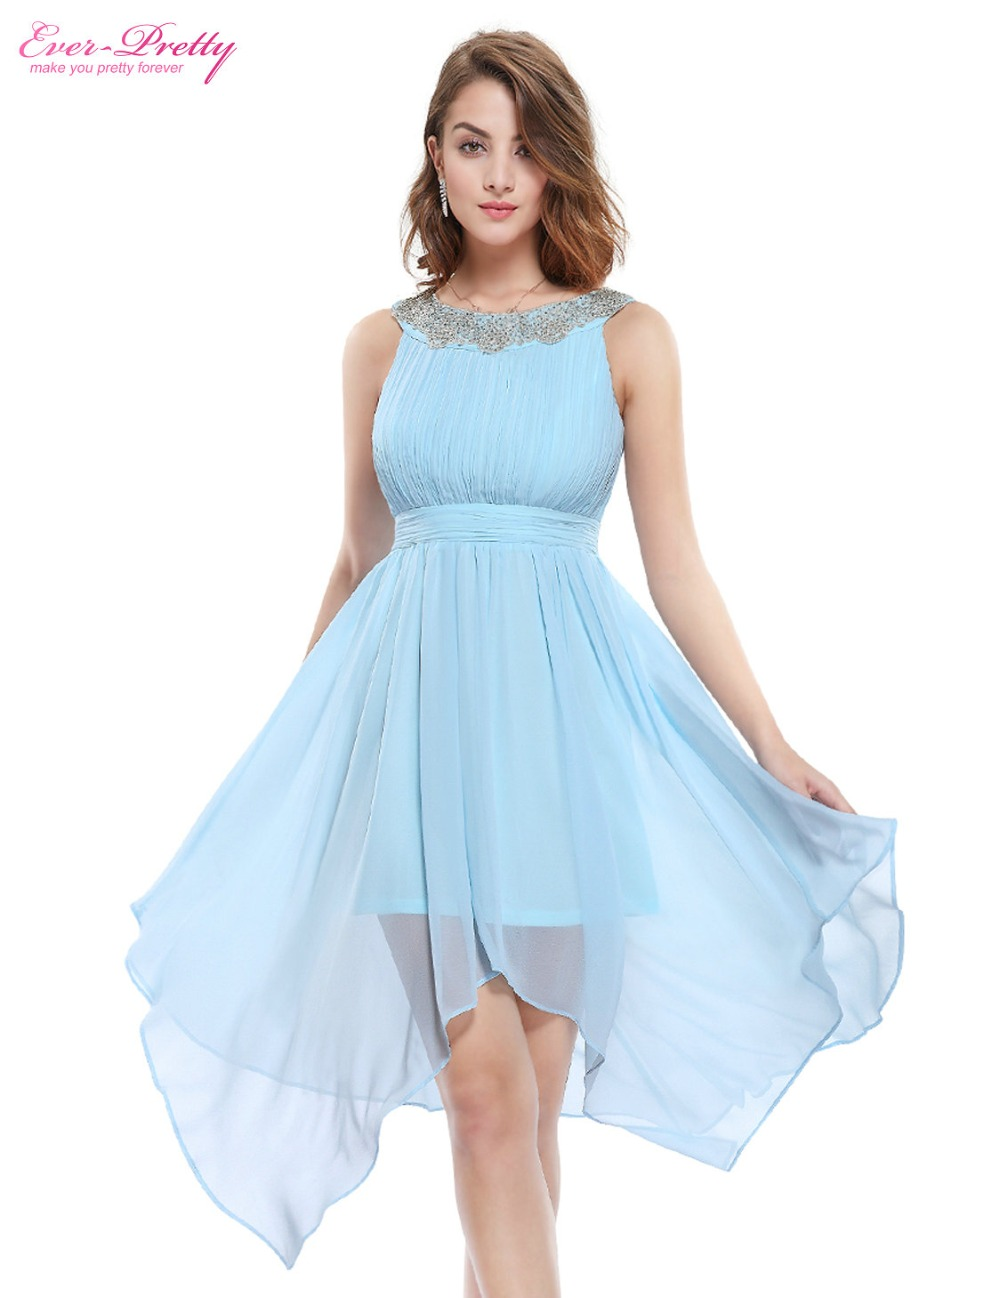 Cheap Pretty Dresses Promotion-Shop for Promotional Cheap Pretty ...